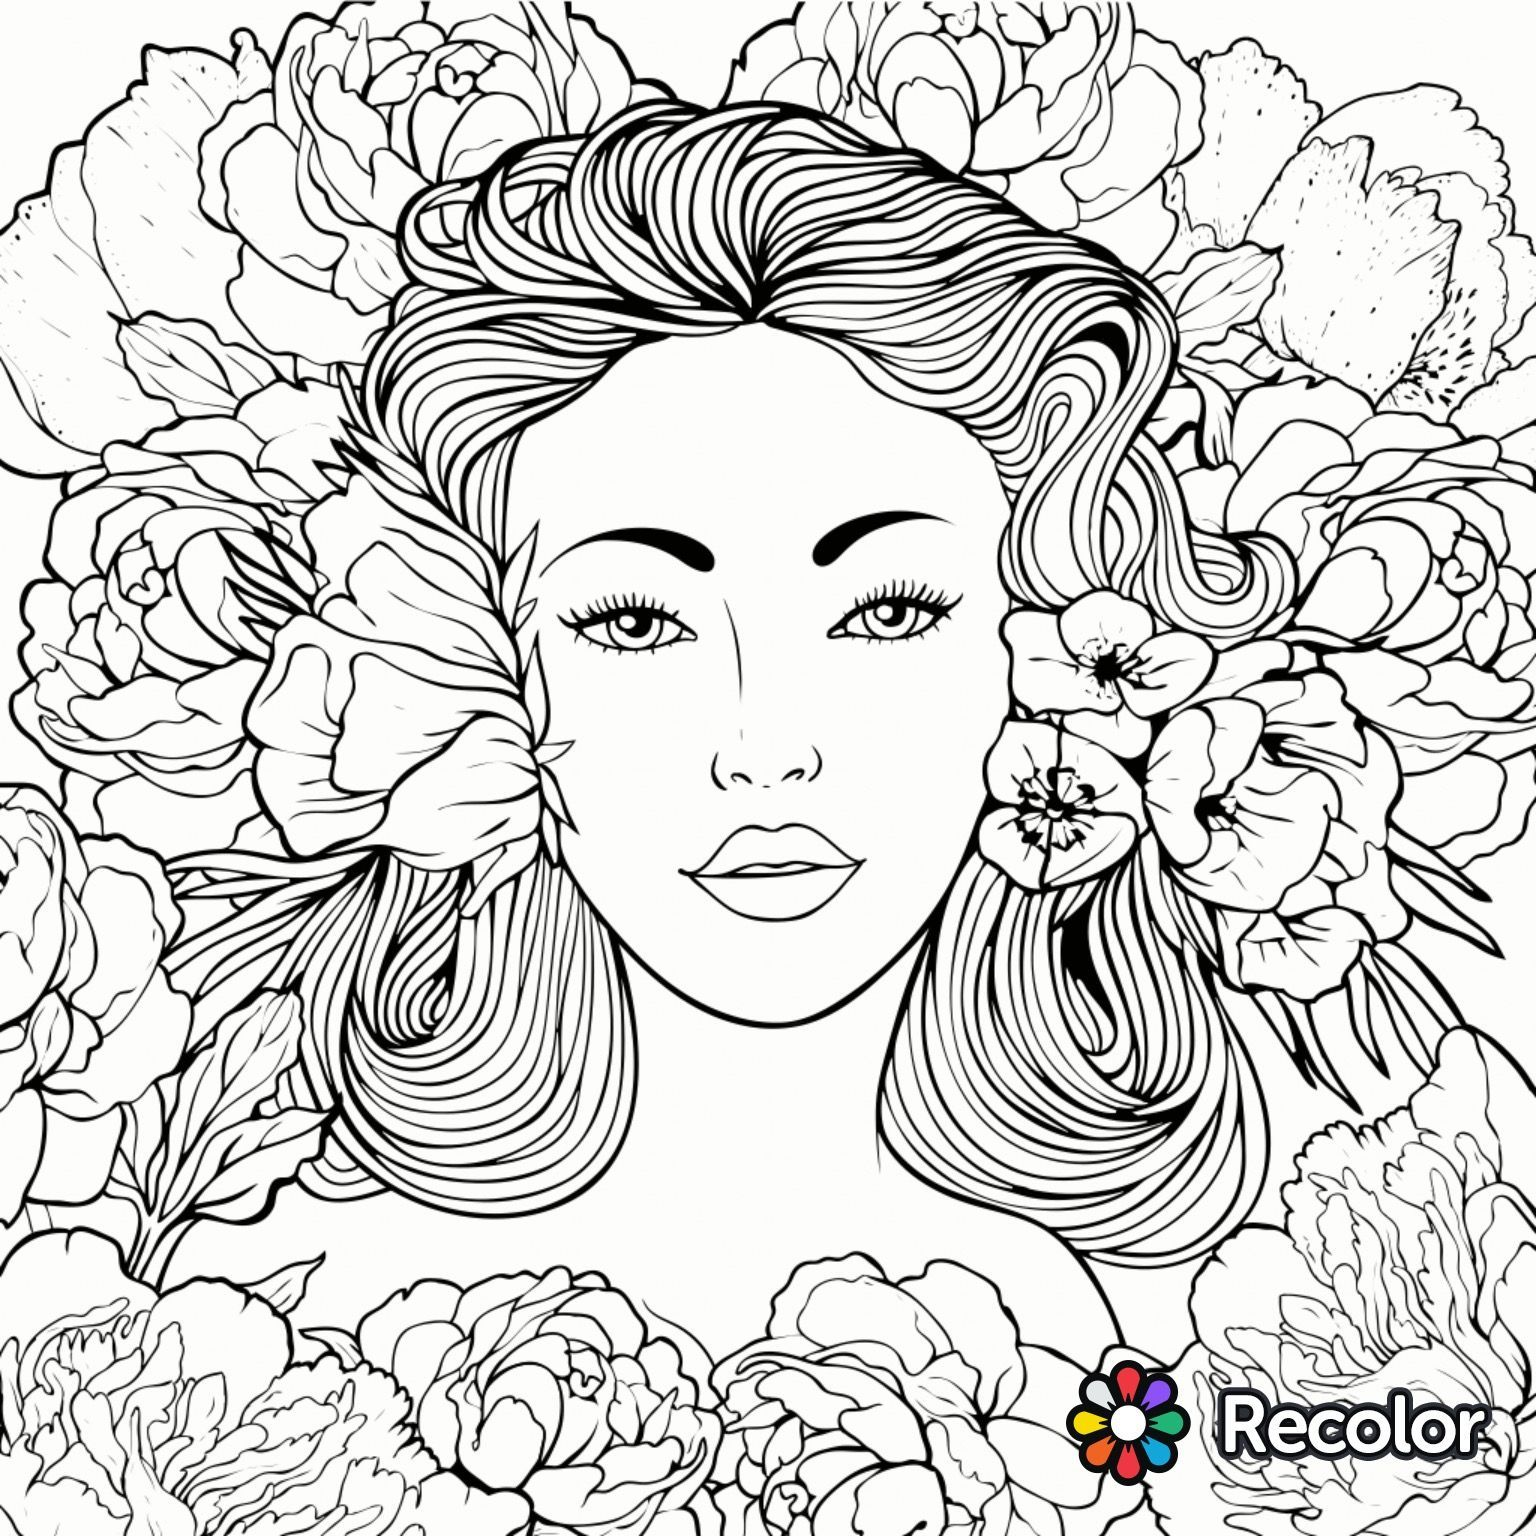 Compromise Recolor Coloring Pages Beauty Page App Beautiful Women